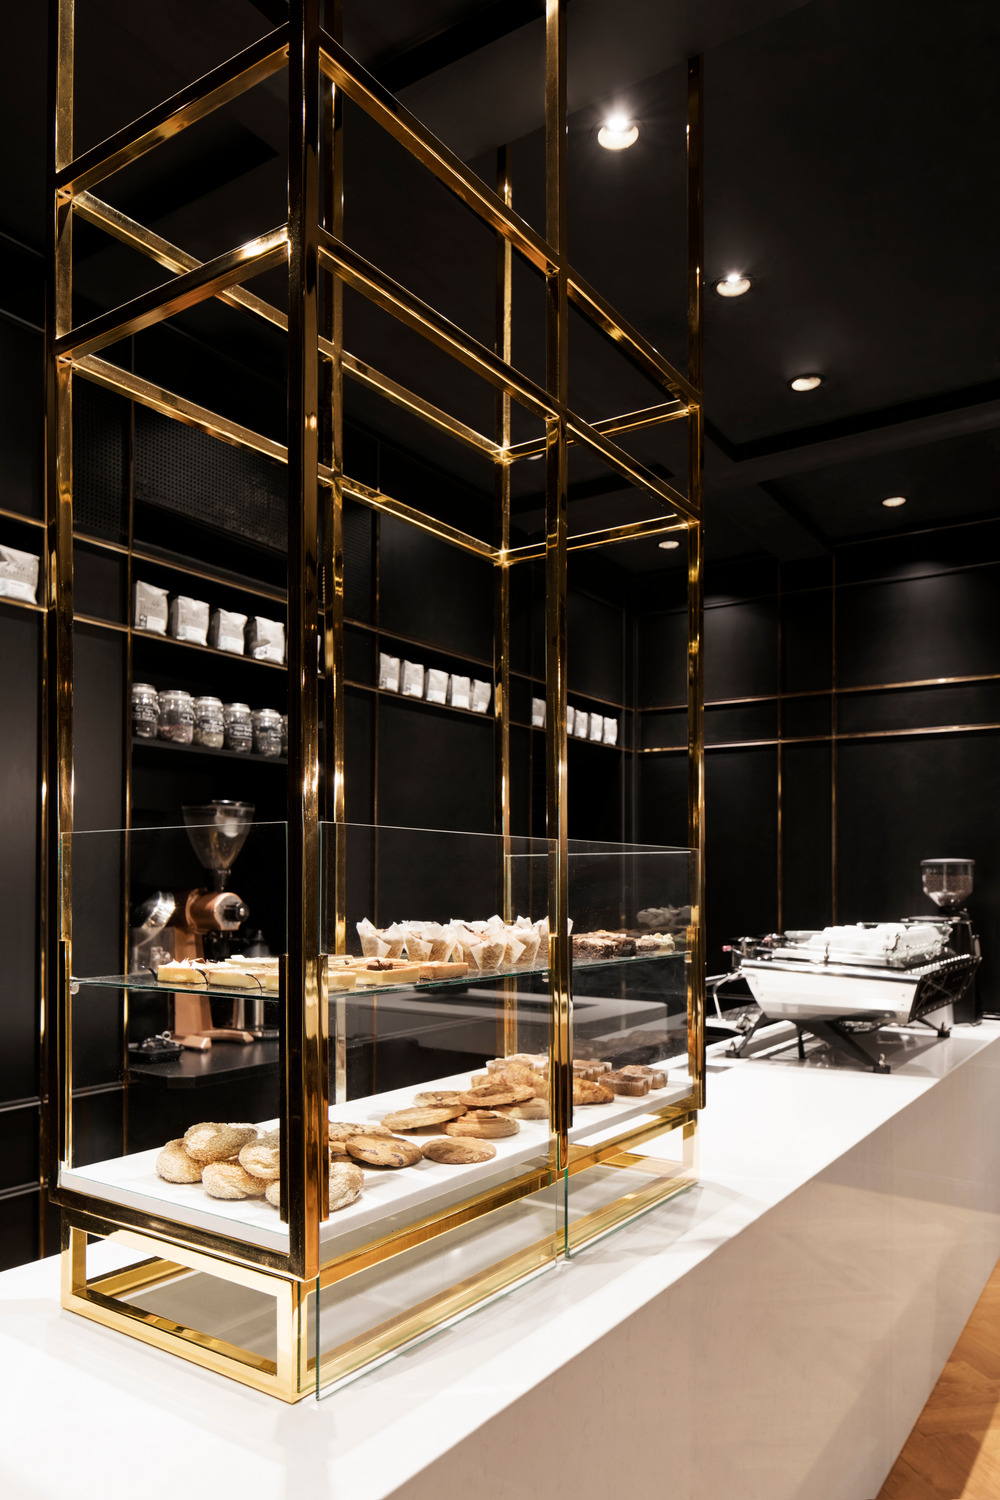 The Standard Café interior design